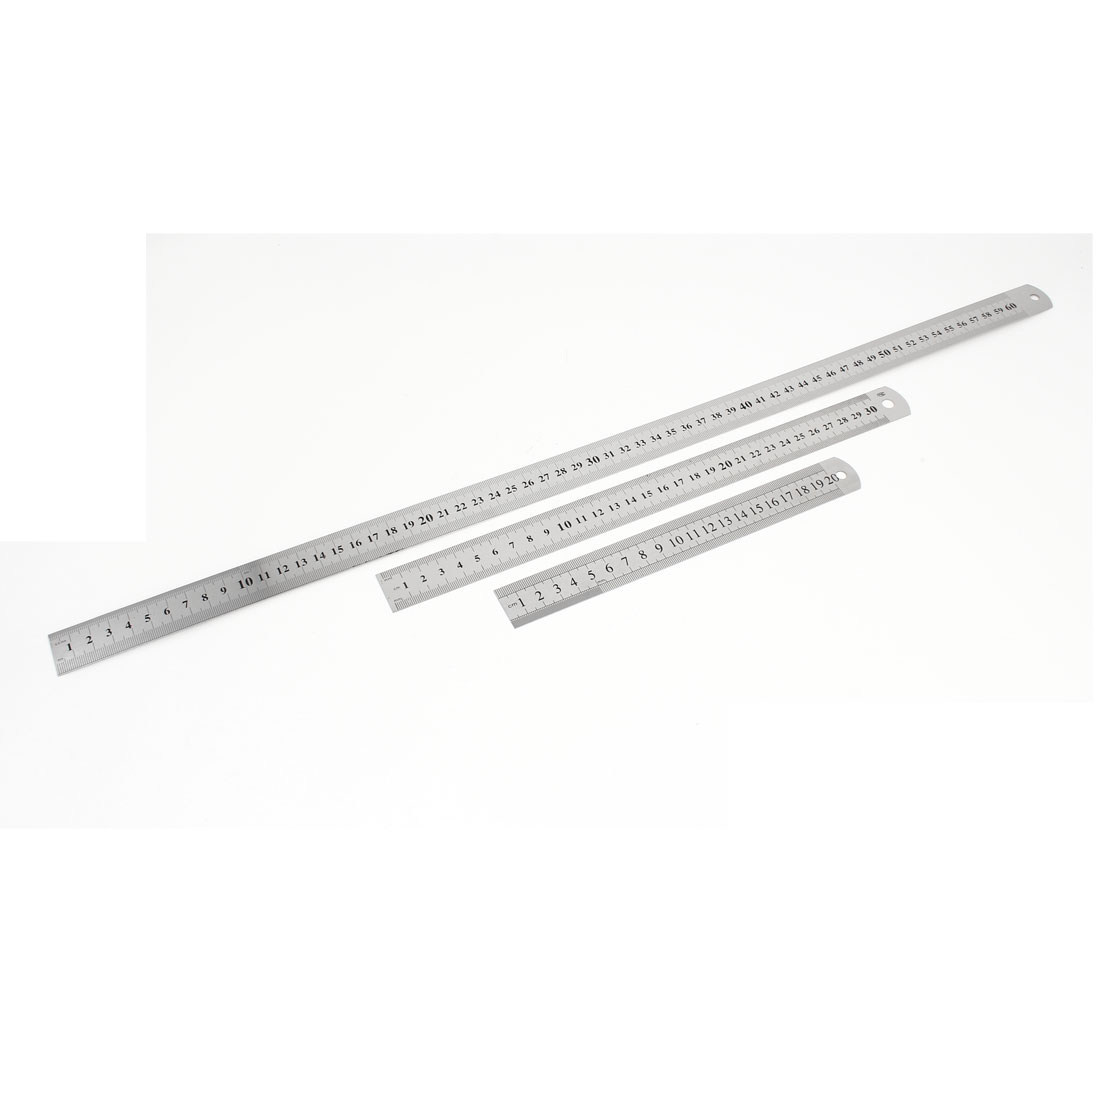 3 in 1 20cm 30cm 60cm Double Side Students Metric Straight Ruler Silver Tone